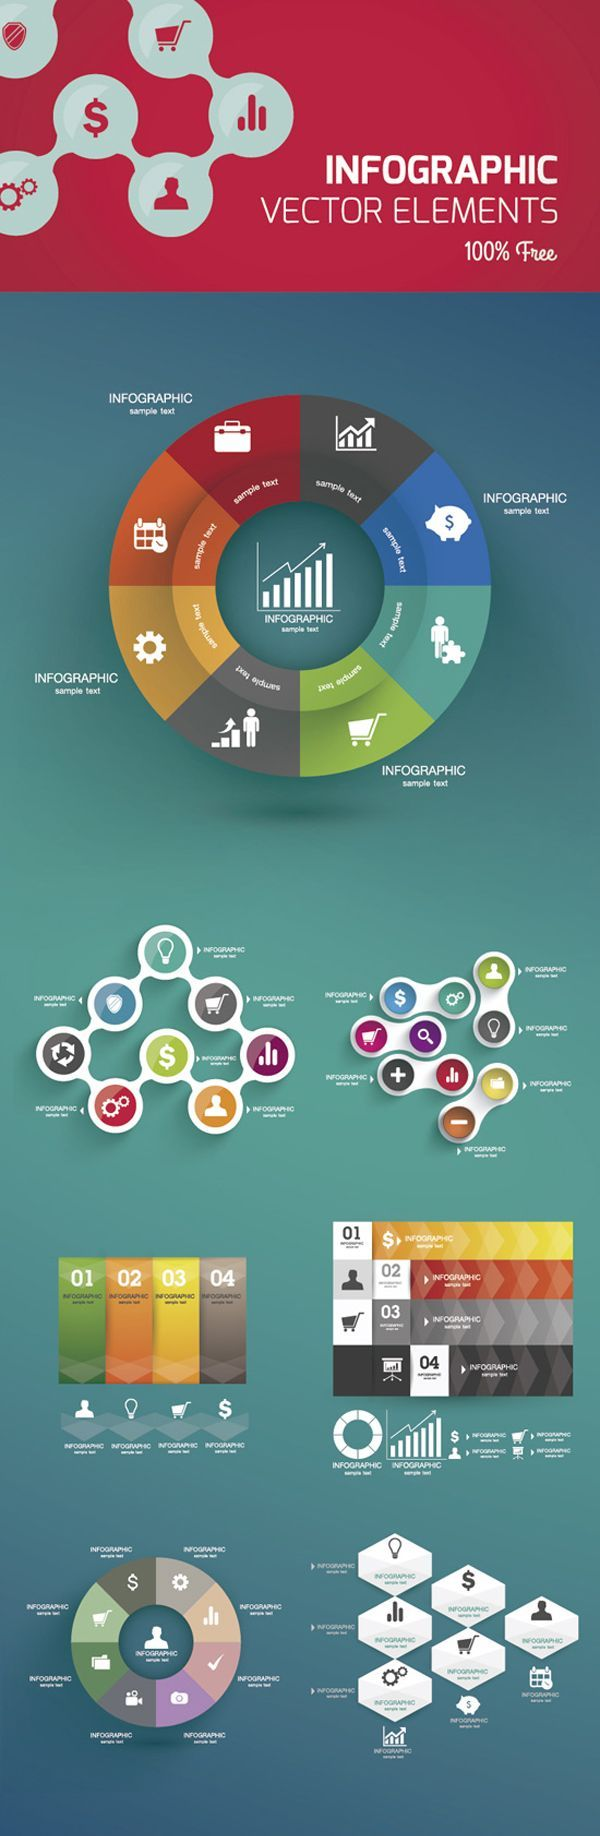 Free Vector Infographic Design Template #infographic #free